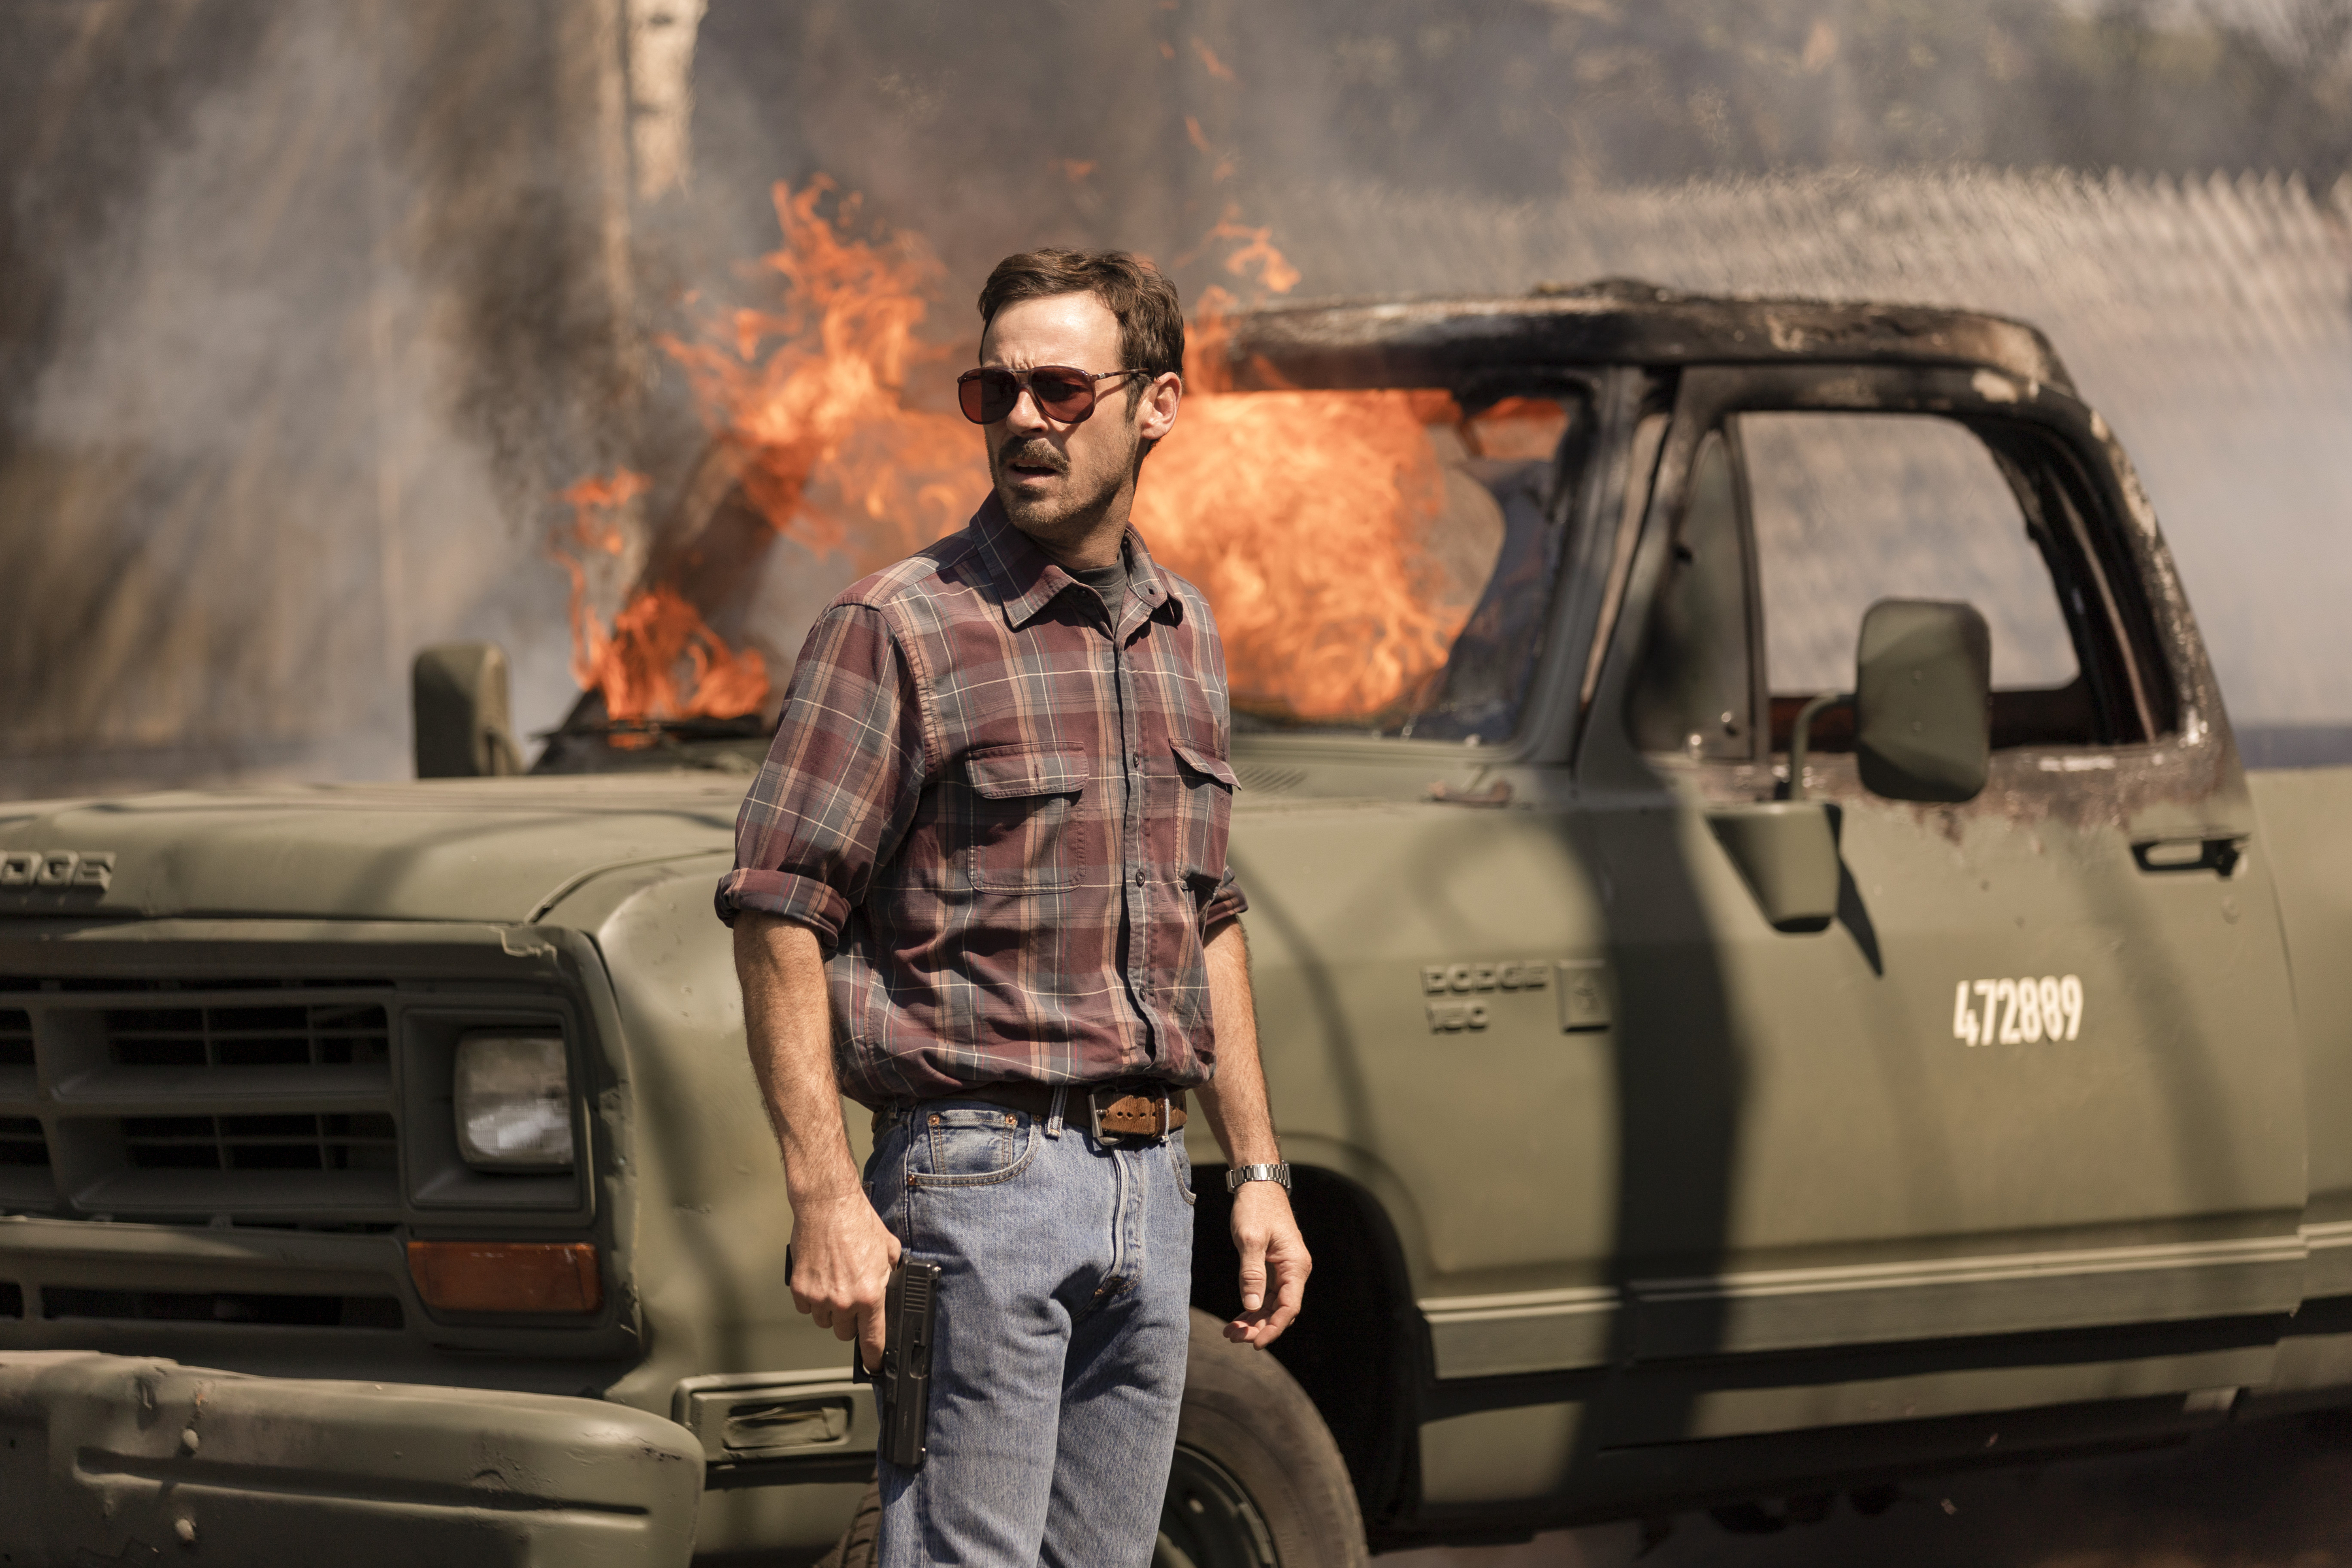 A man stands in front of a truck that's on fire in Narcos: Mexico season 3